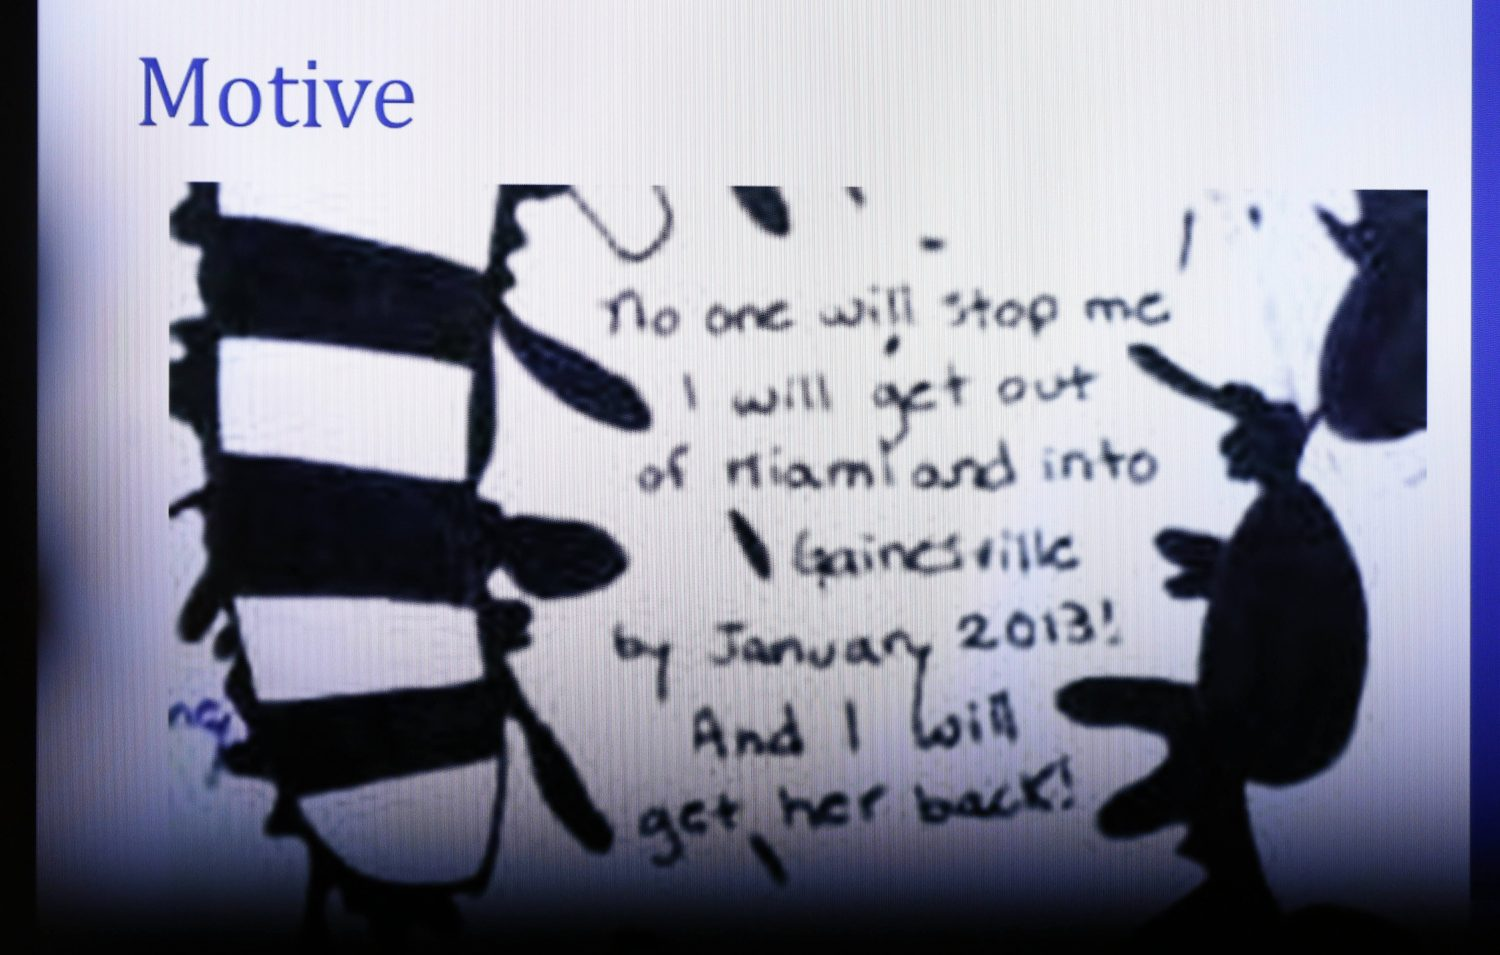 The prosecution shows a photo of writings found in a book allegedly written by Pedro Bravo during opening statements in the murder case against Bravo in courtroom 1B of the Alachua County Criminal Justice Center Tuesday, August 5, 2014.  (Doug Finger/The Gainesville Sun/Pool)